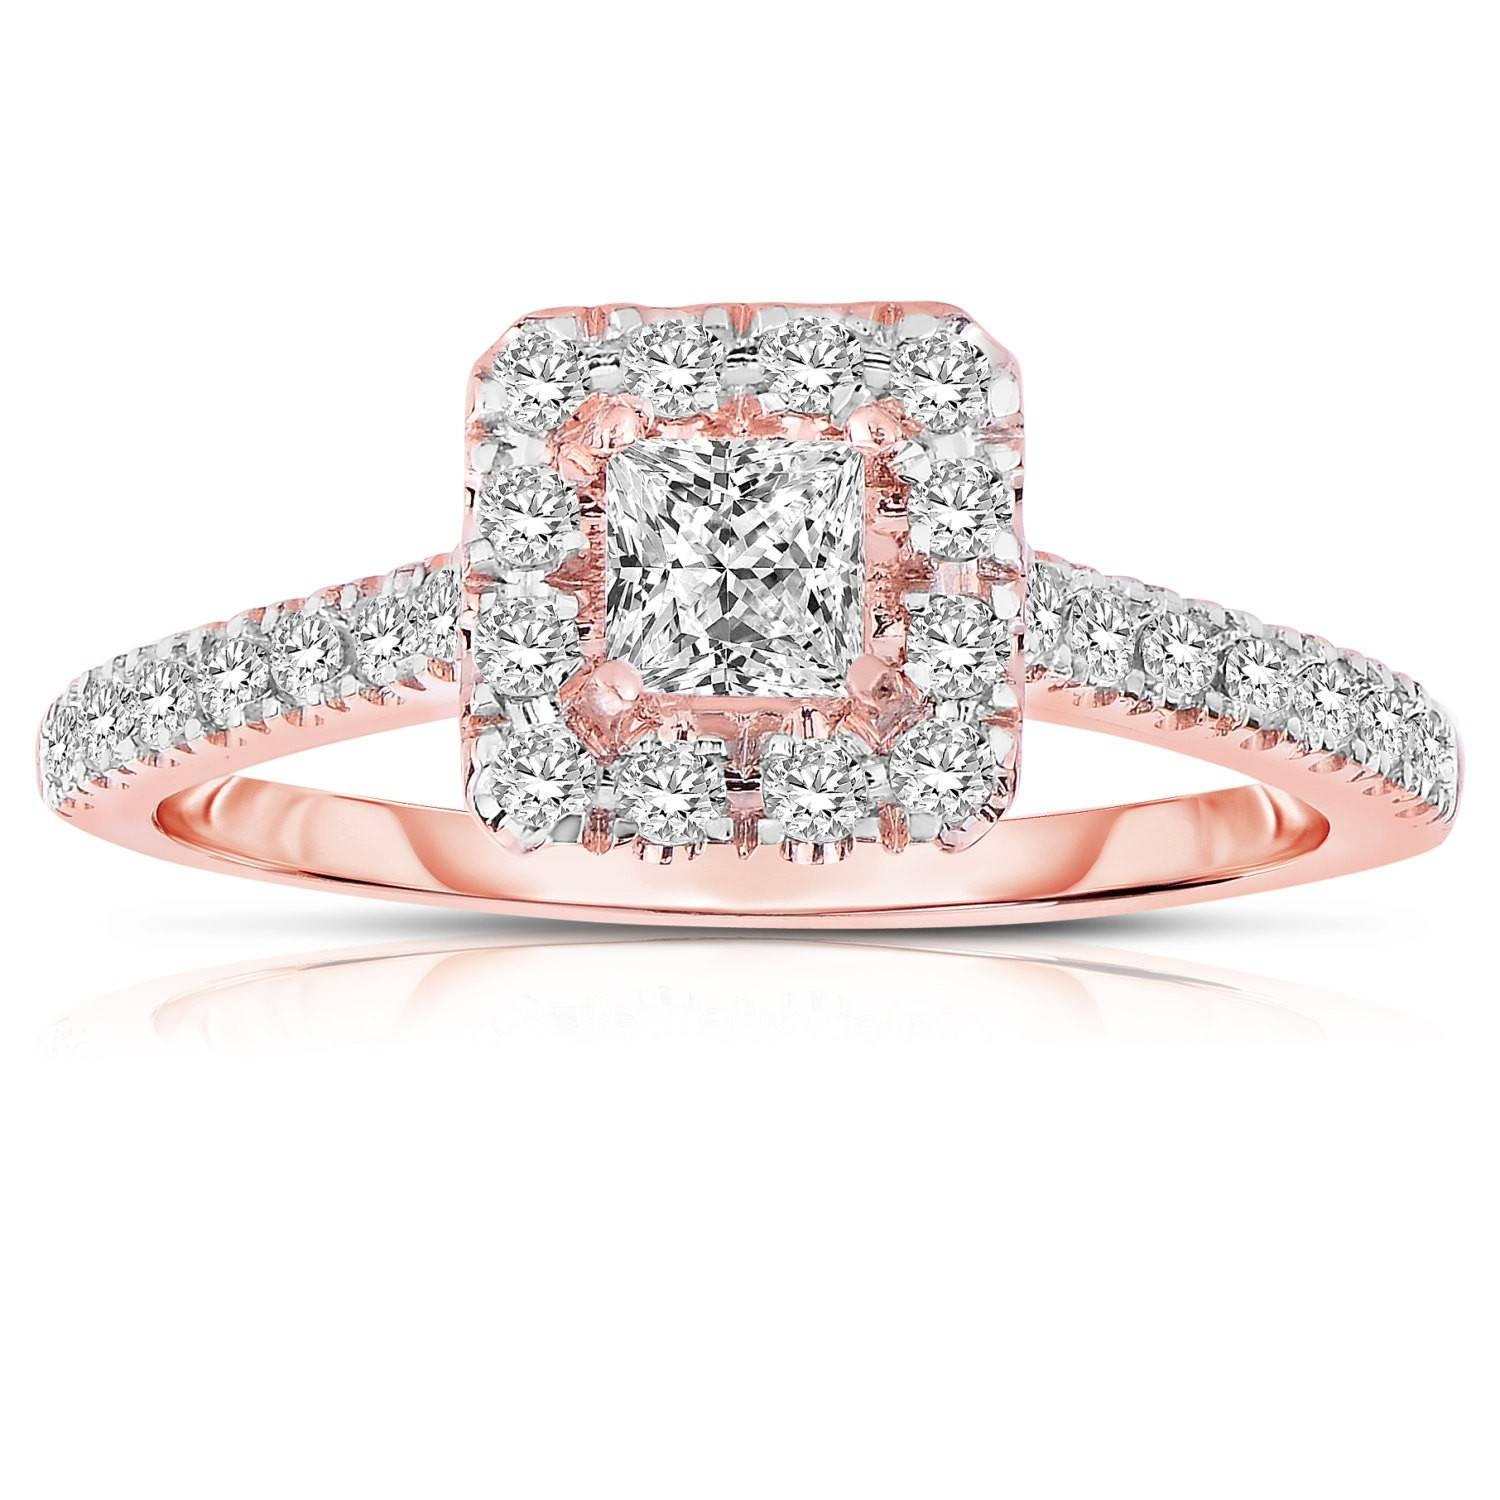 Engagement Rings Under 500 | Diamond Engagement Rings Under $500 Intended For Diamond Engagement Rings Under  (View 12 of 15)